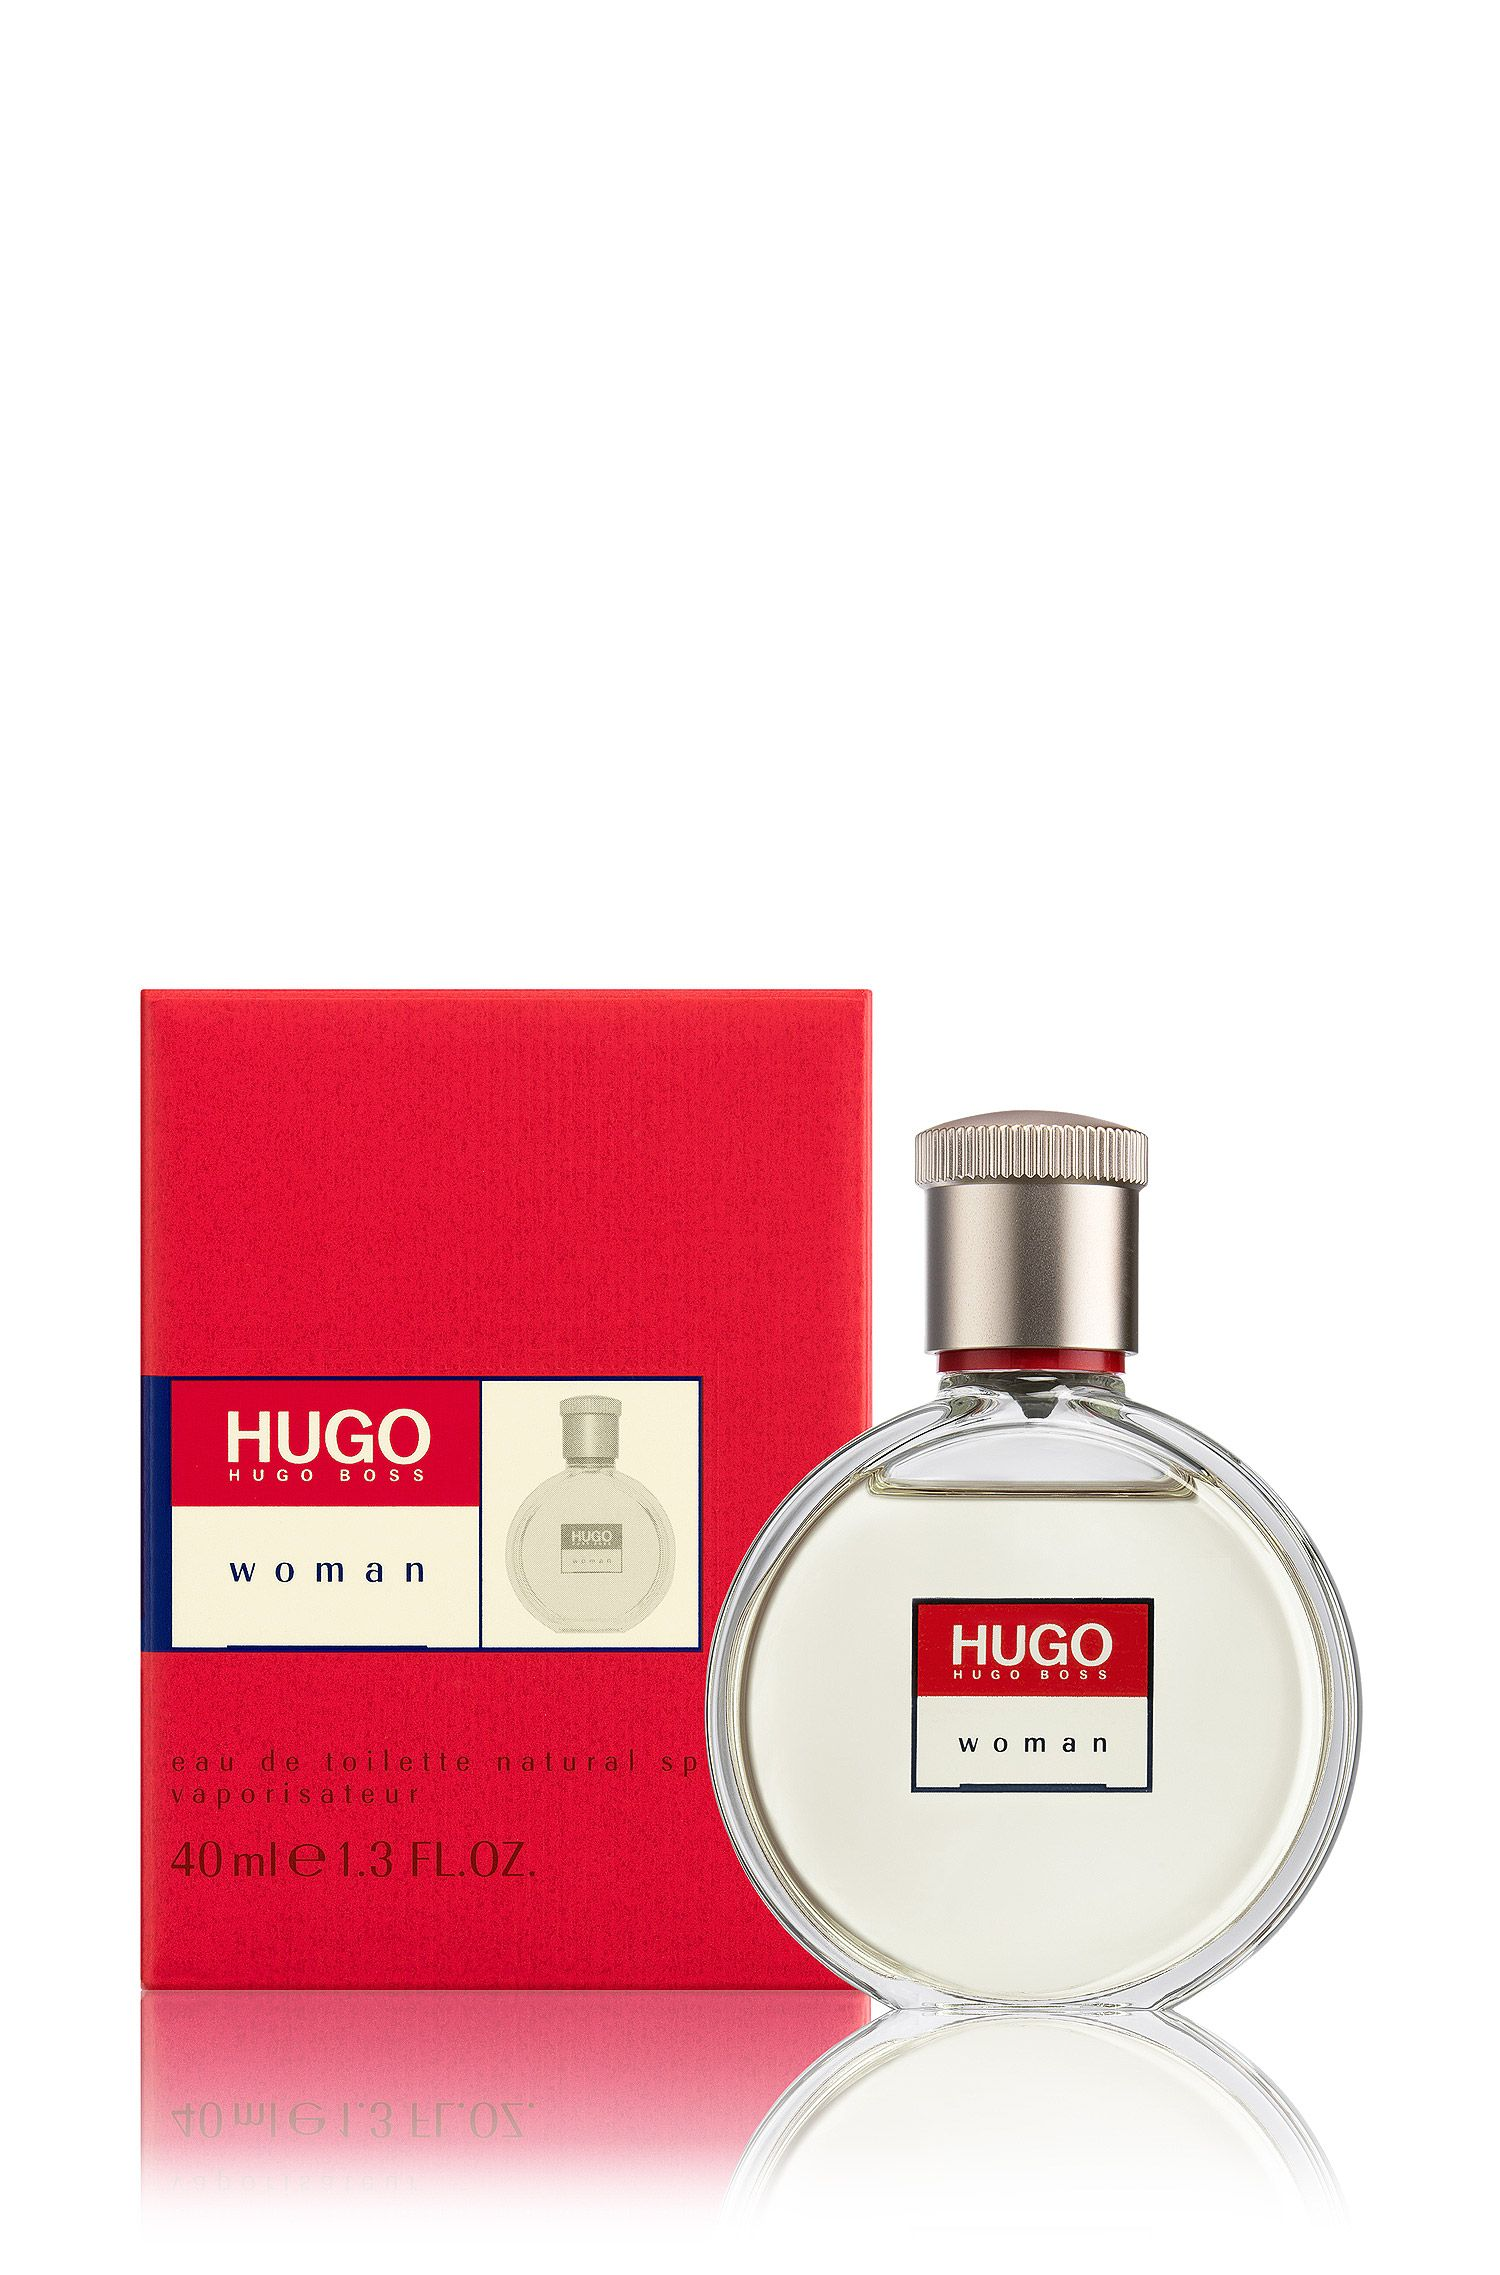 HUGO Woman eau de toilette 40 ml